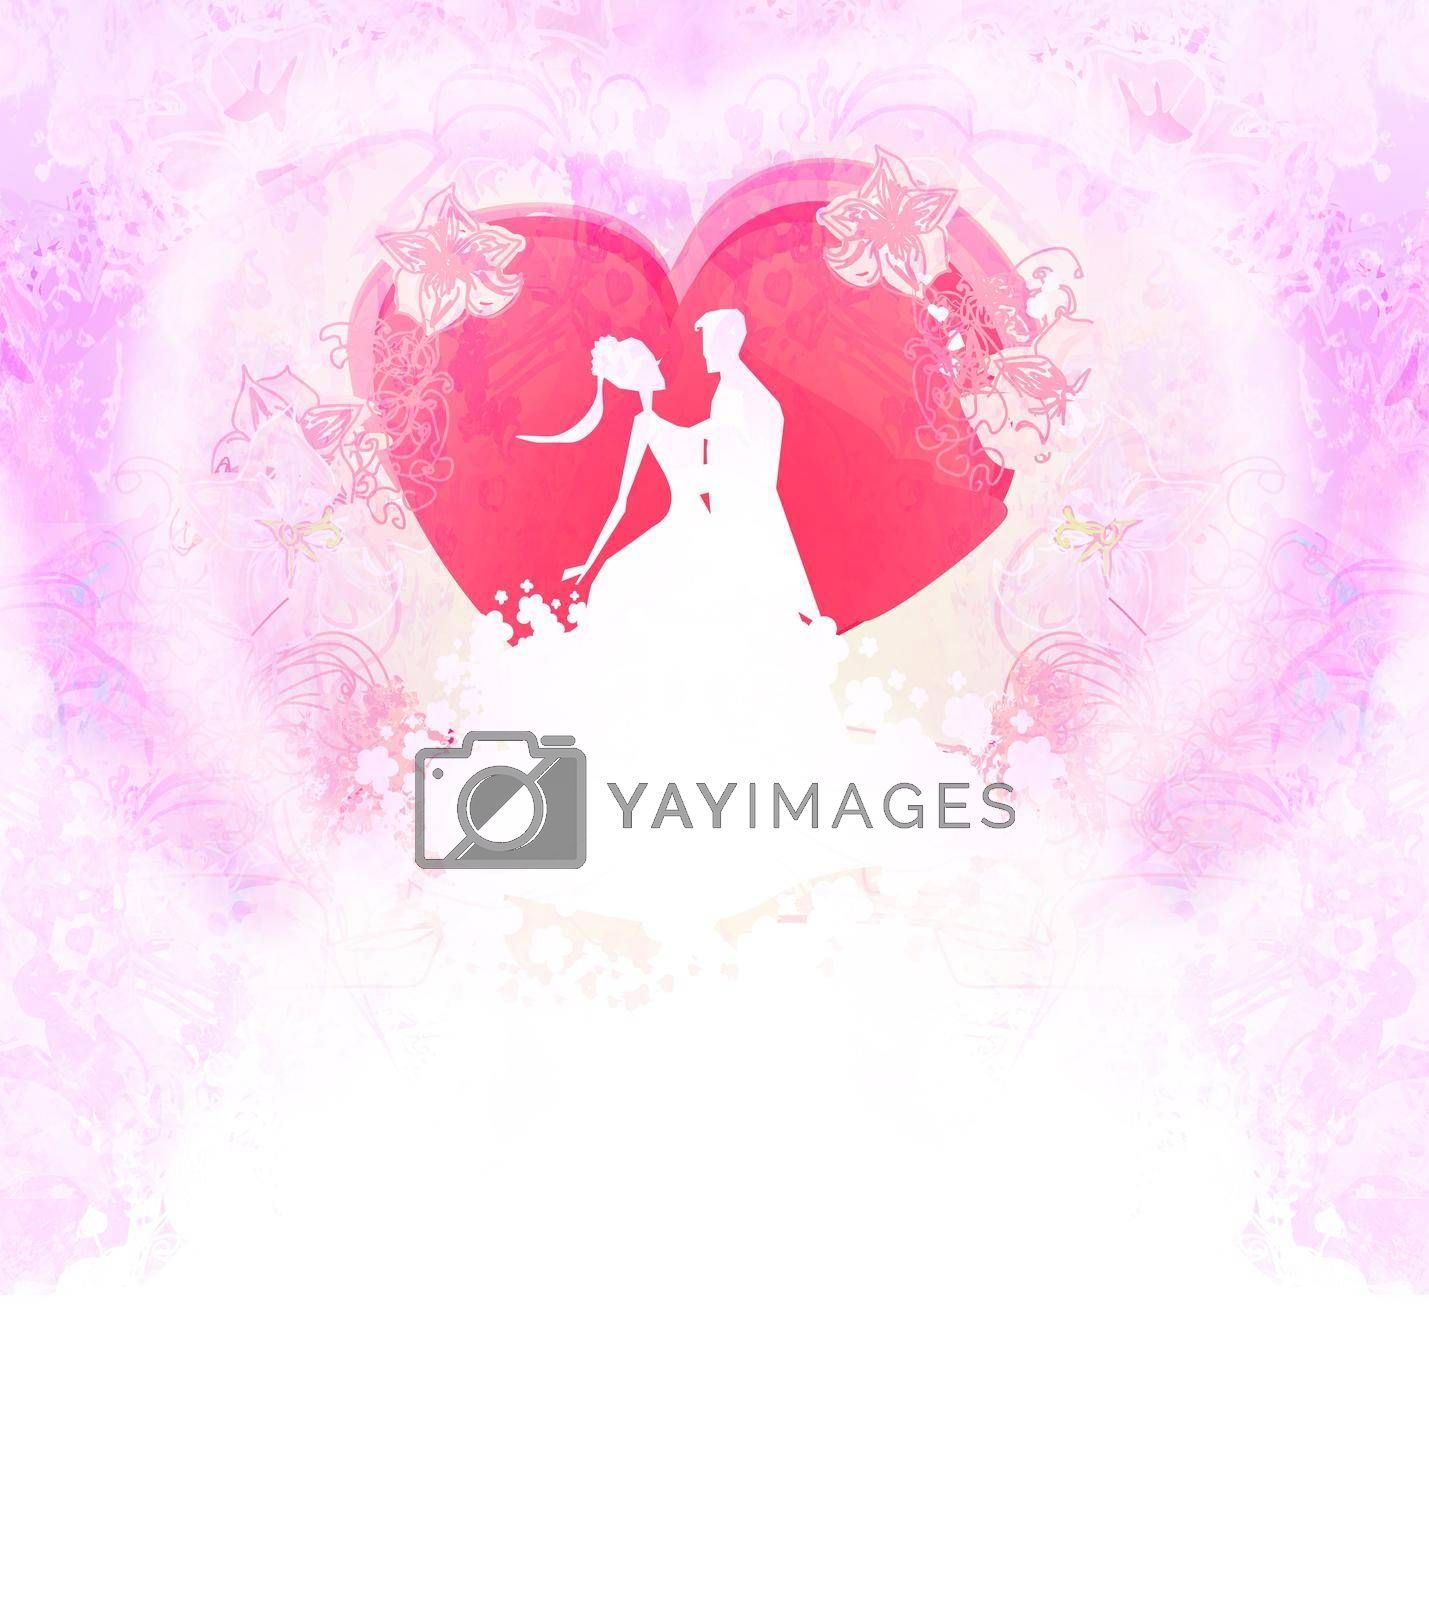 Royalty free image of Floral greeting card with silhouette of romantic couple  by JackyBrown